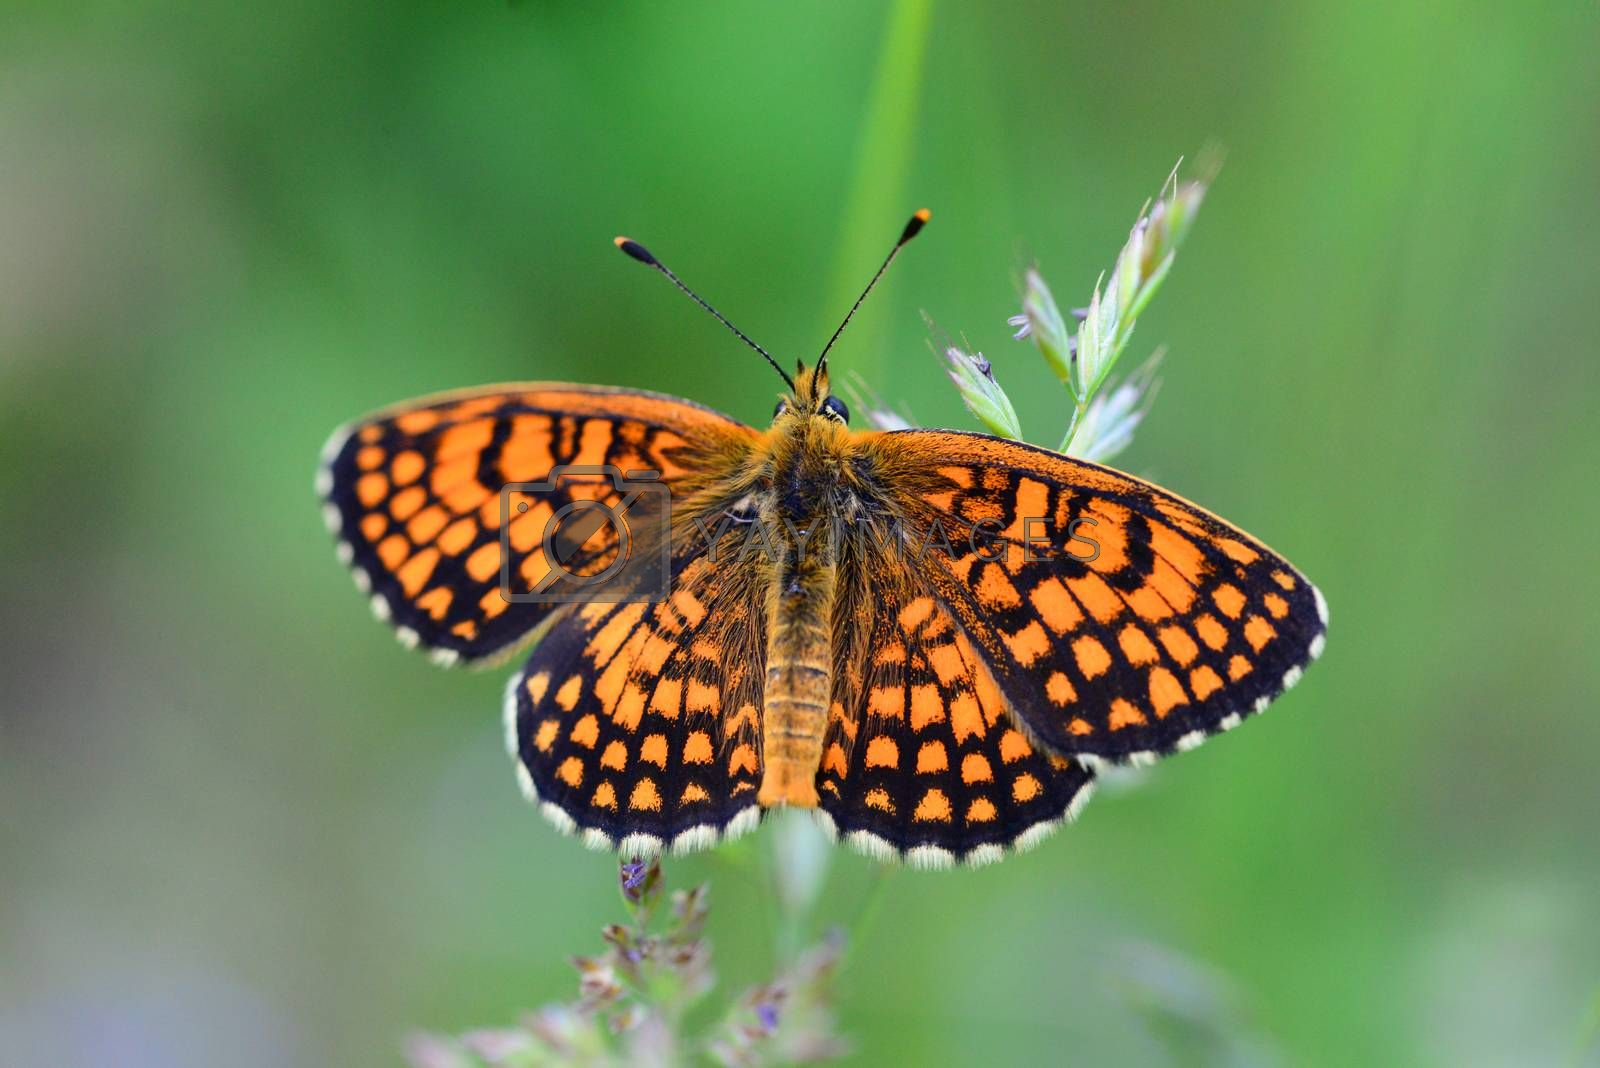 Royalty free image of orange butterfly close detail by tony4urban